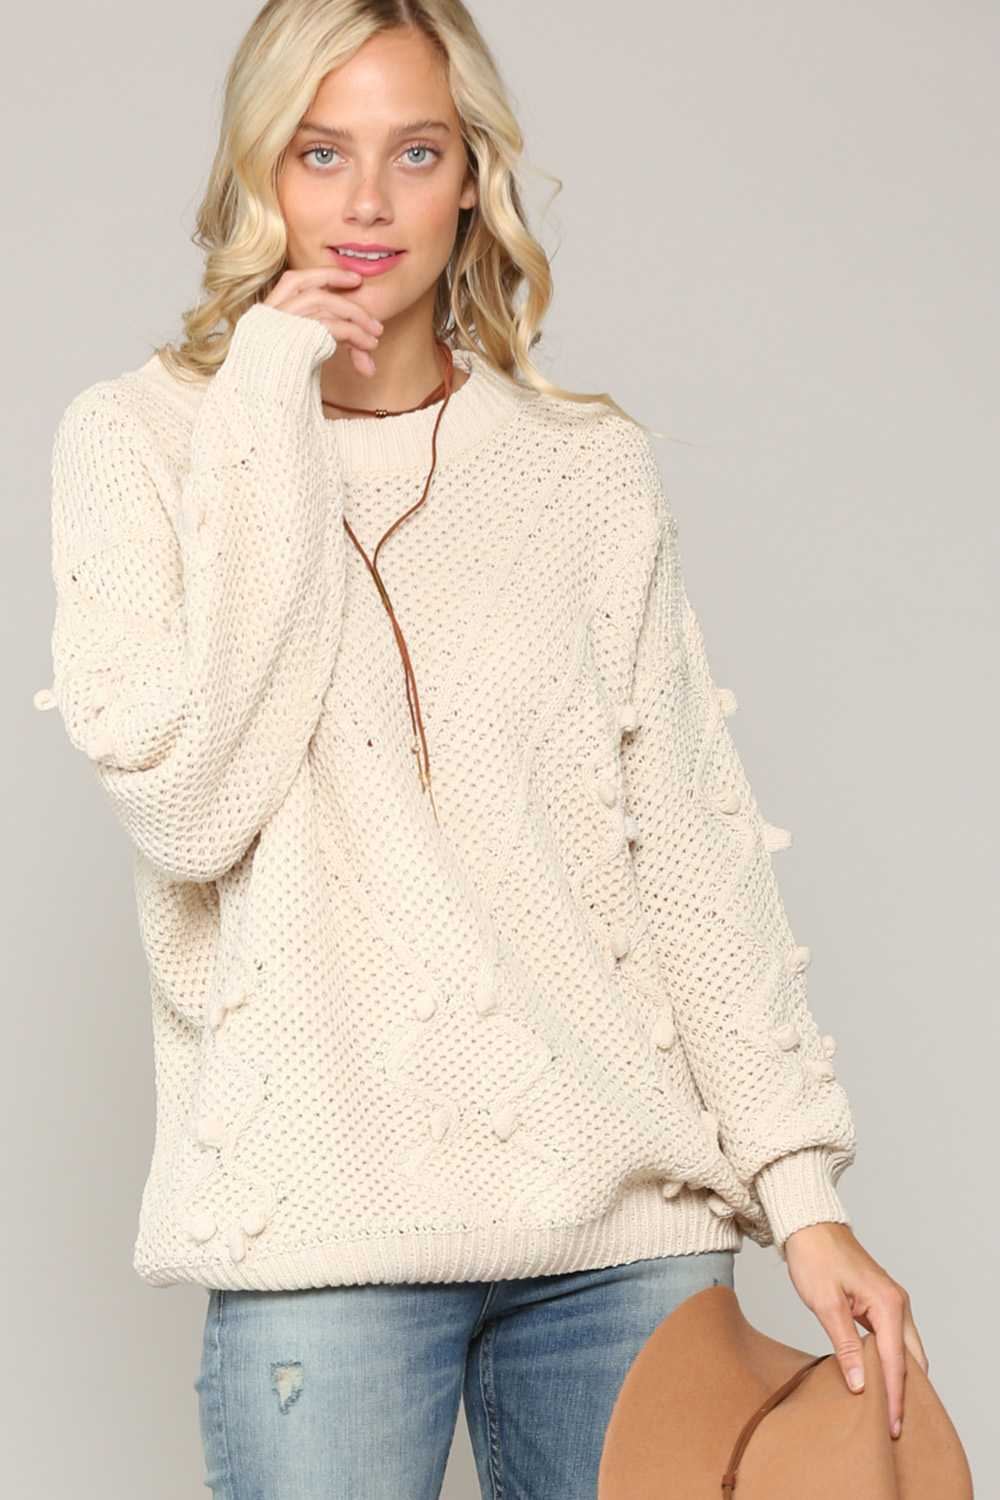 SOLID PRINT KNIT SWEATER TOP